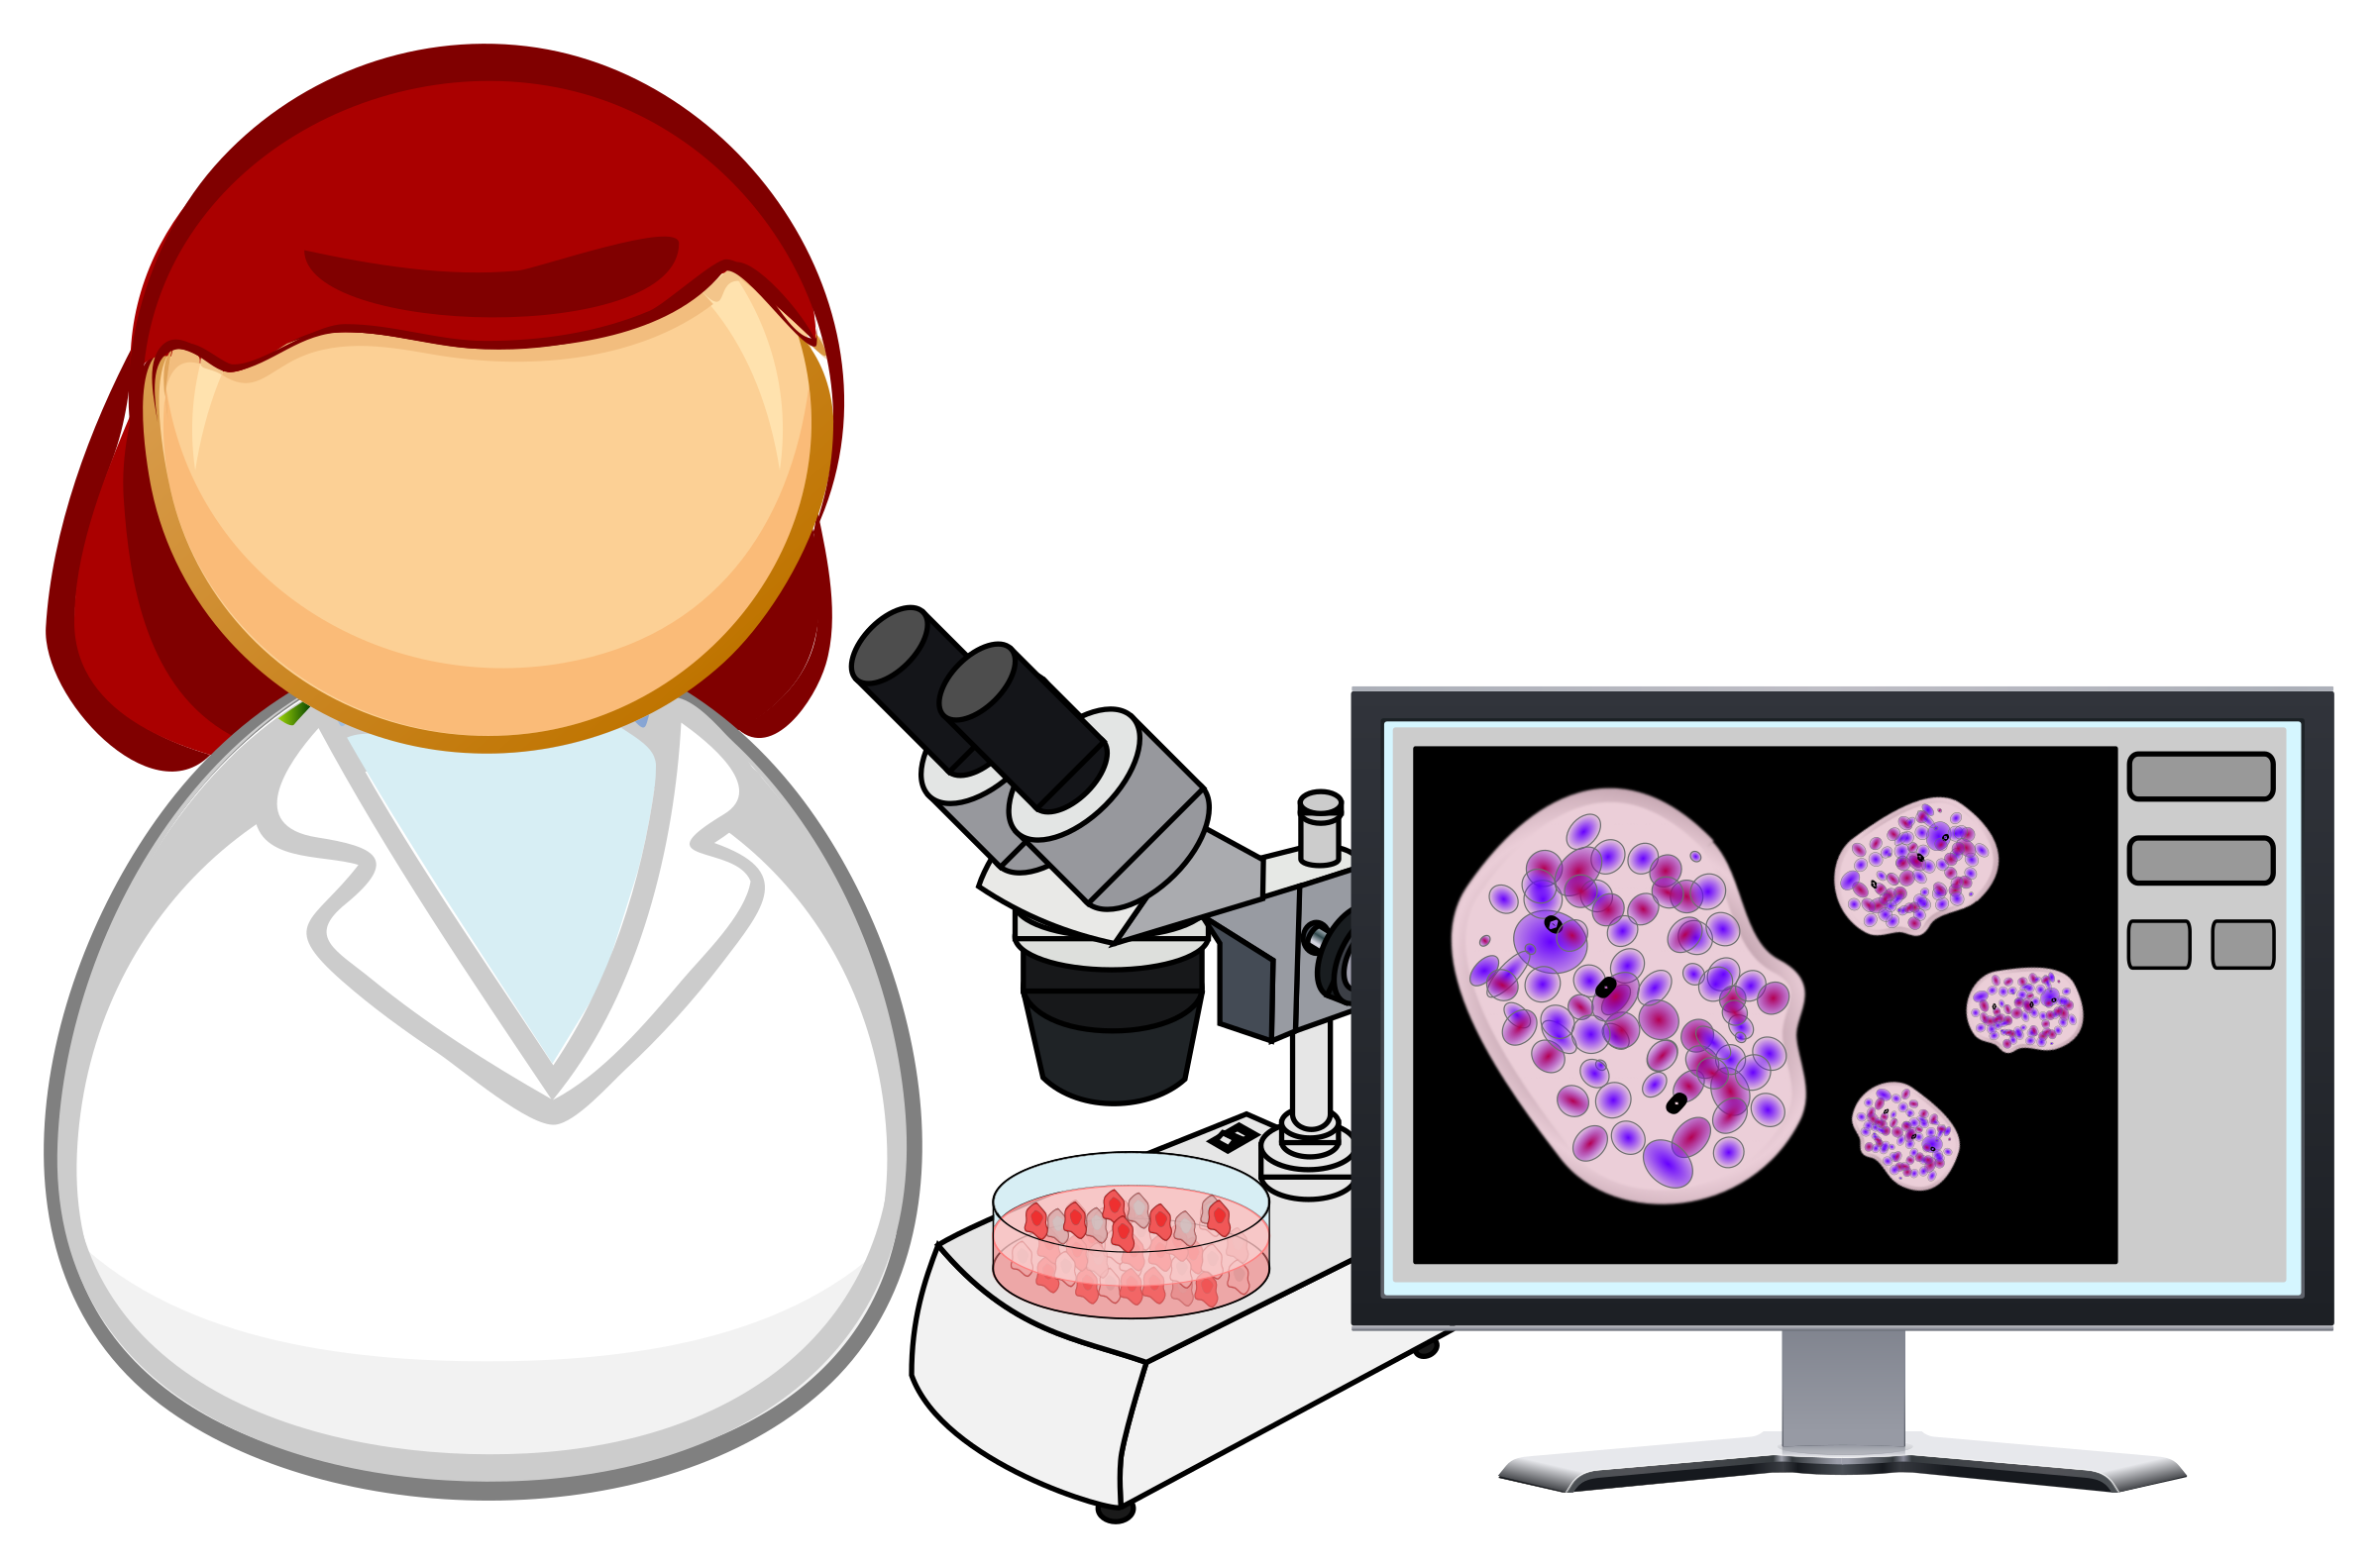 Microbiologist big image png. Working clipart office work